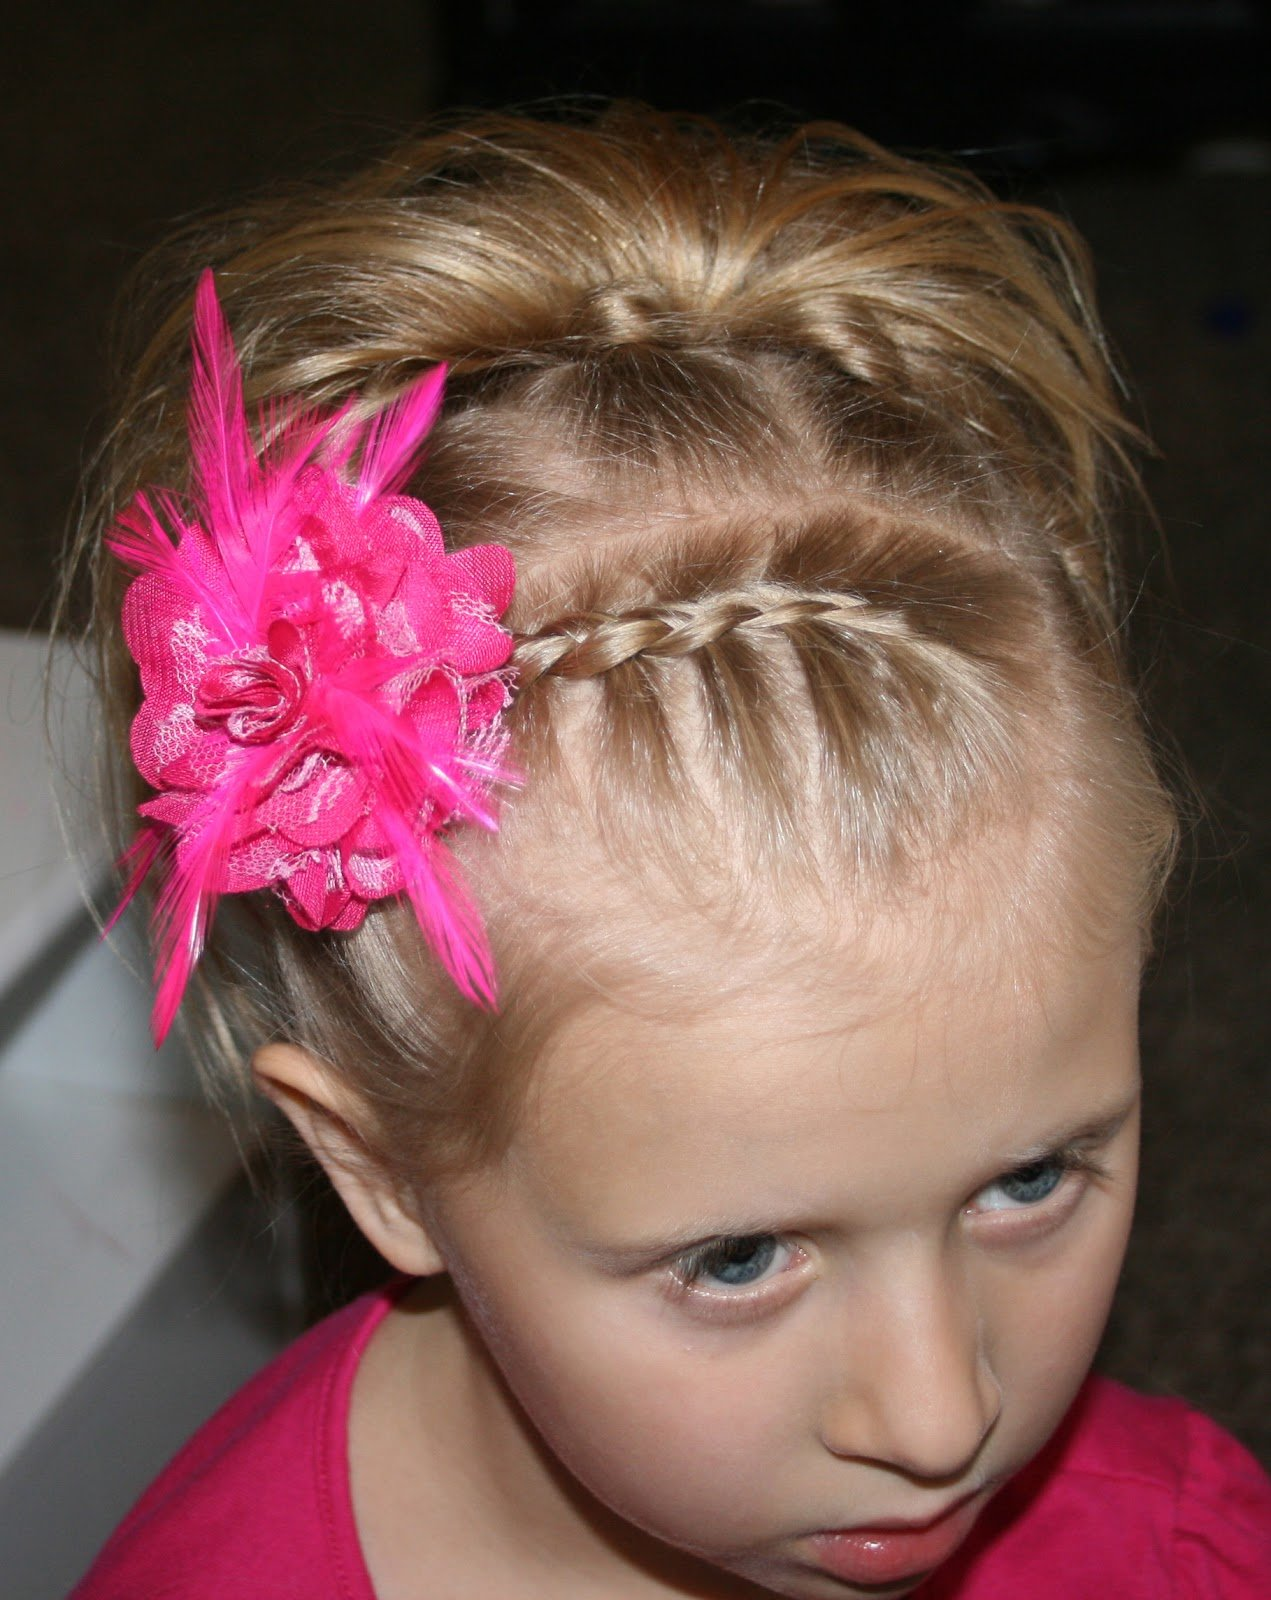 New Little Girl Hairstyle Tutorial 7 Knot Hair Do Ideas With Pictures